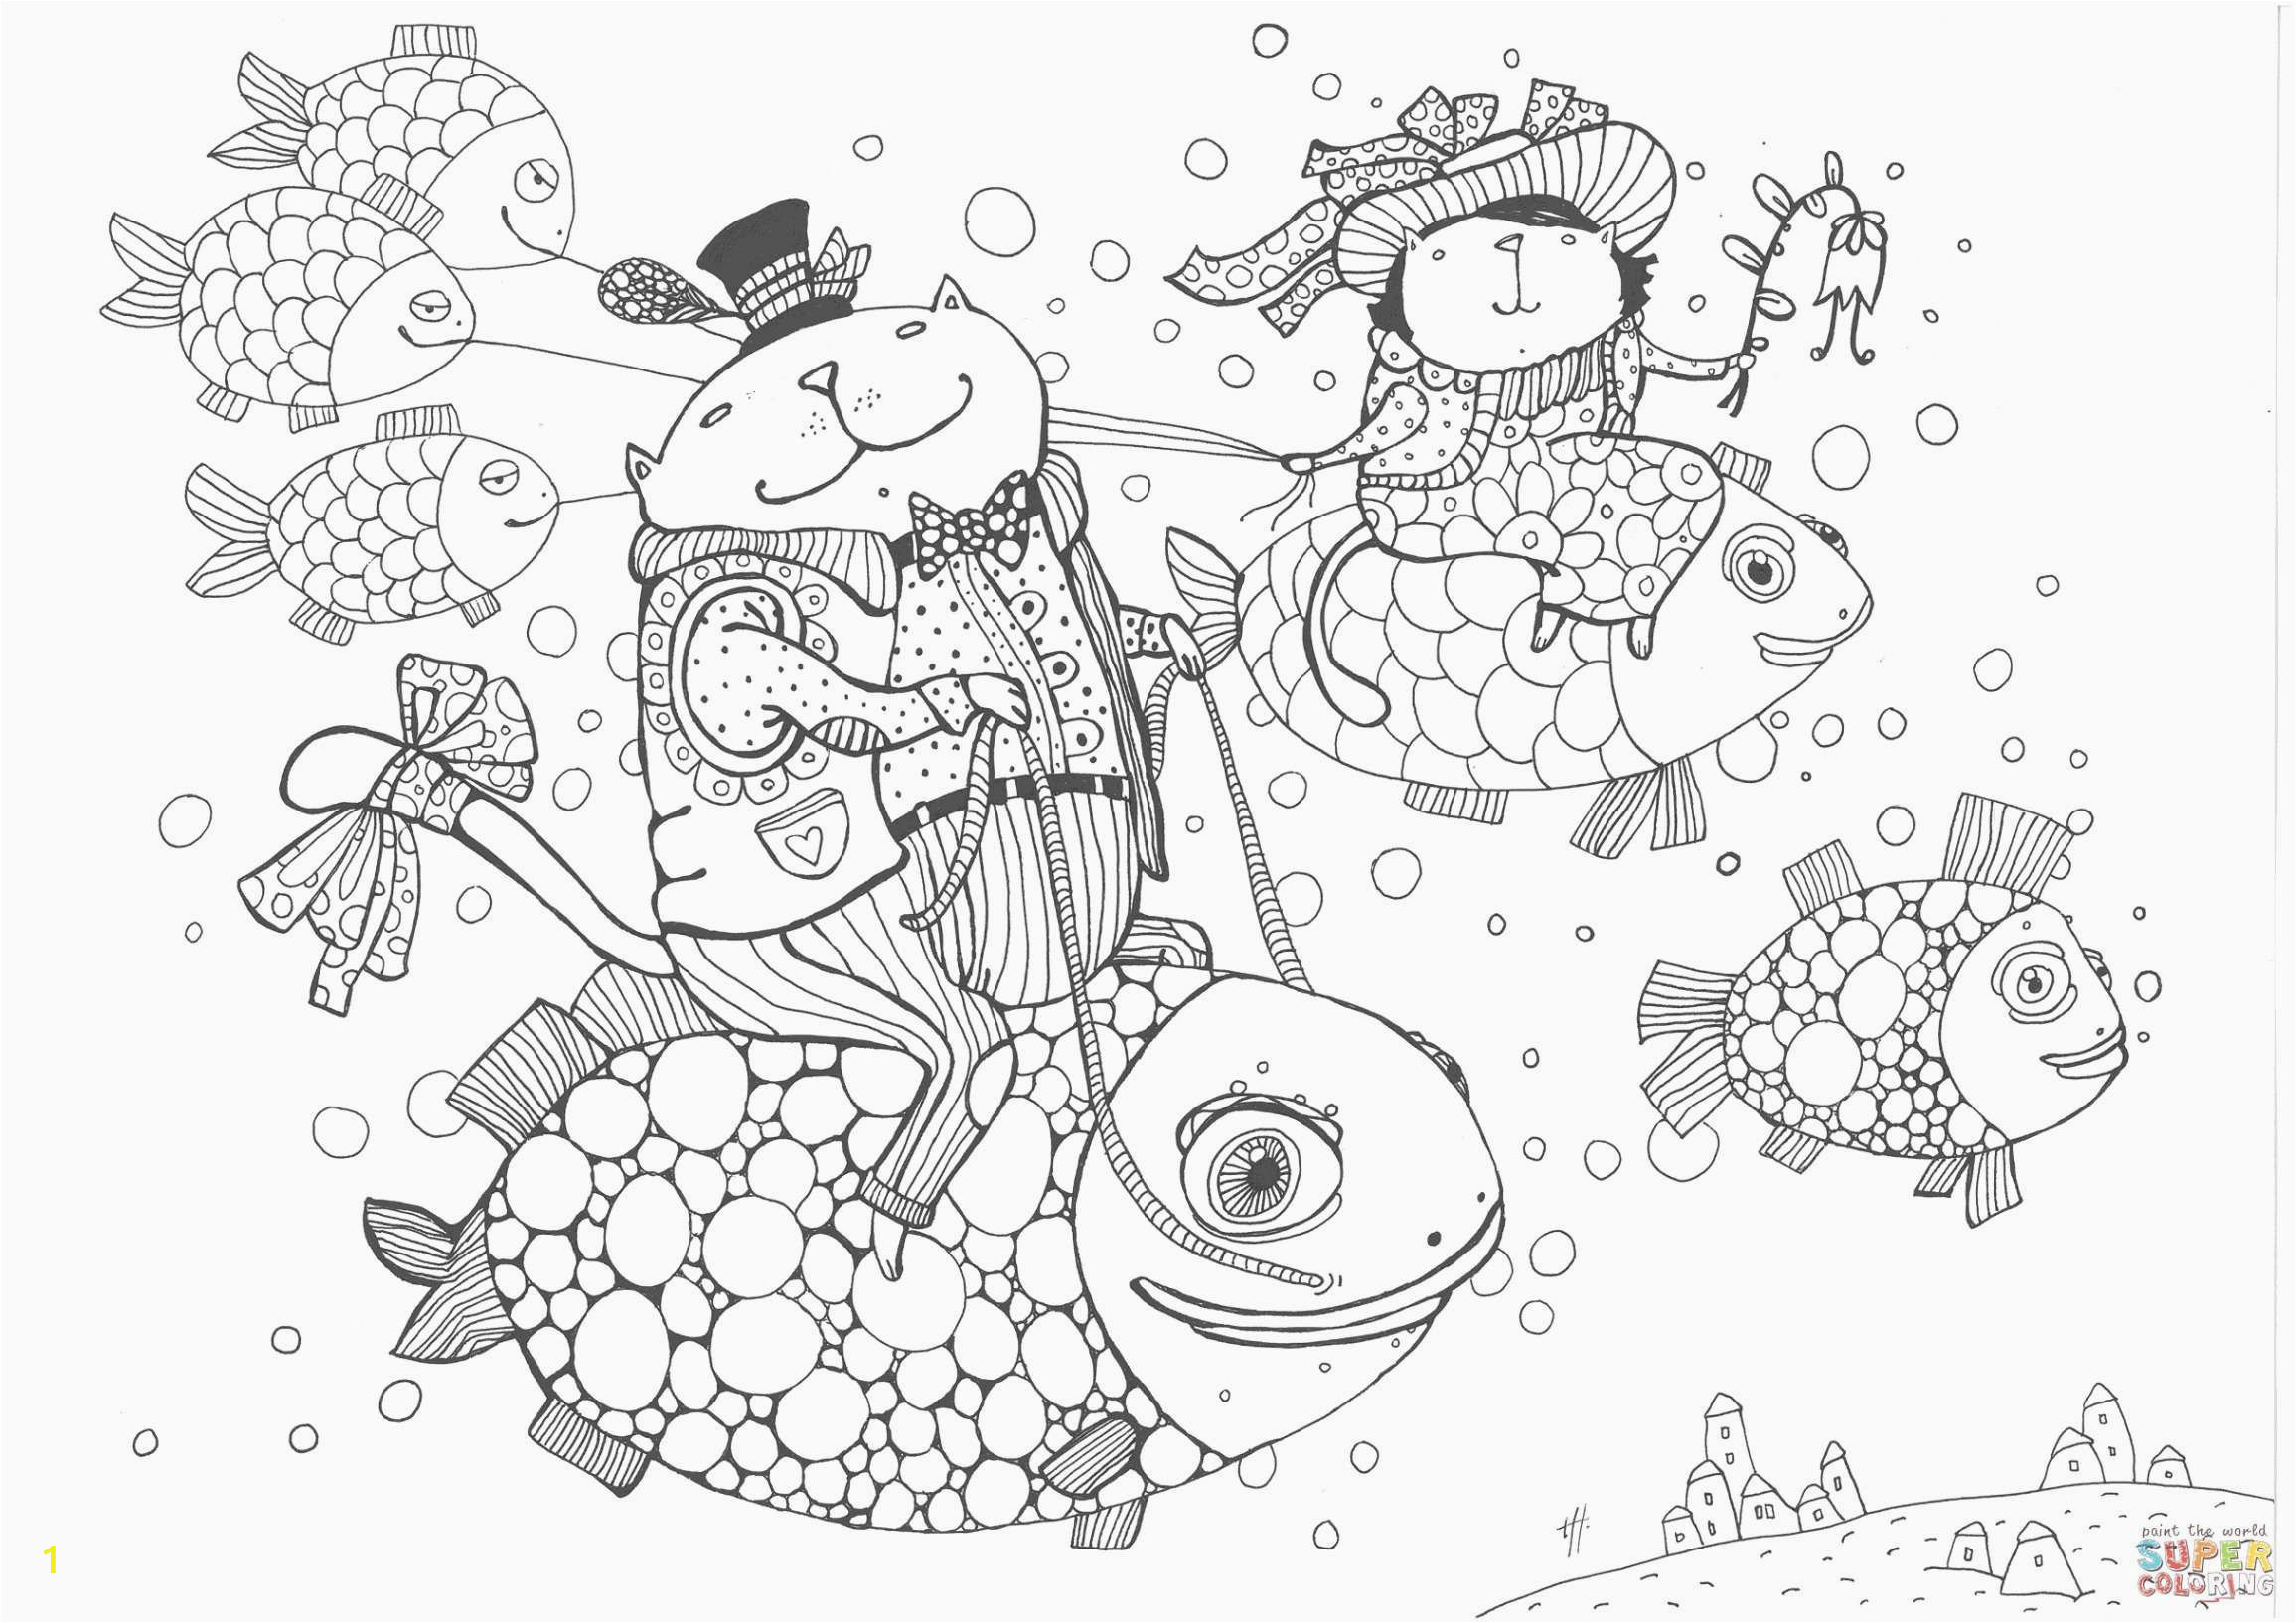 elf on the shelf coloring pages textures in colored pencil avengers colouring book detailed flower sun for adults fun sheets kids crayola mini farm preschool charlie brown christmas